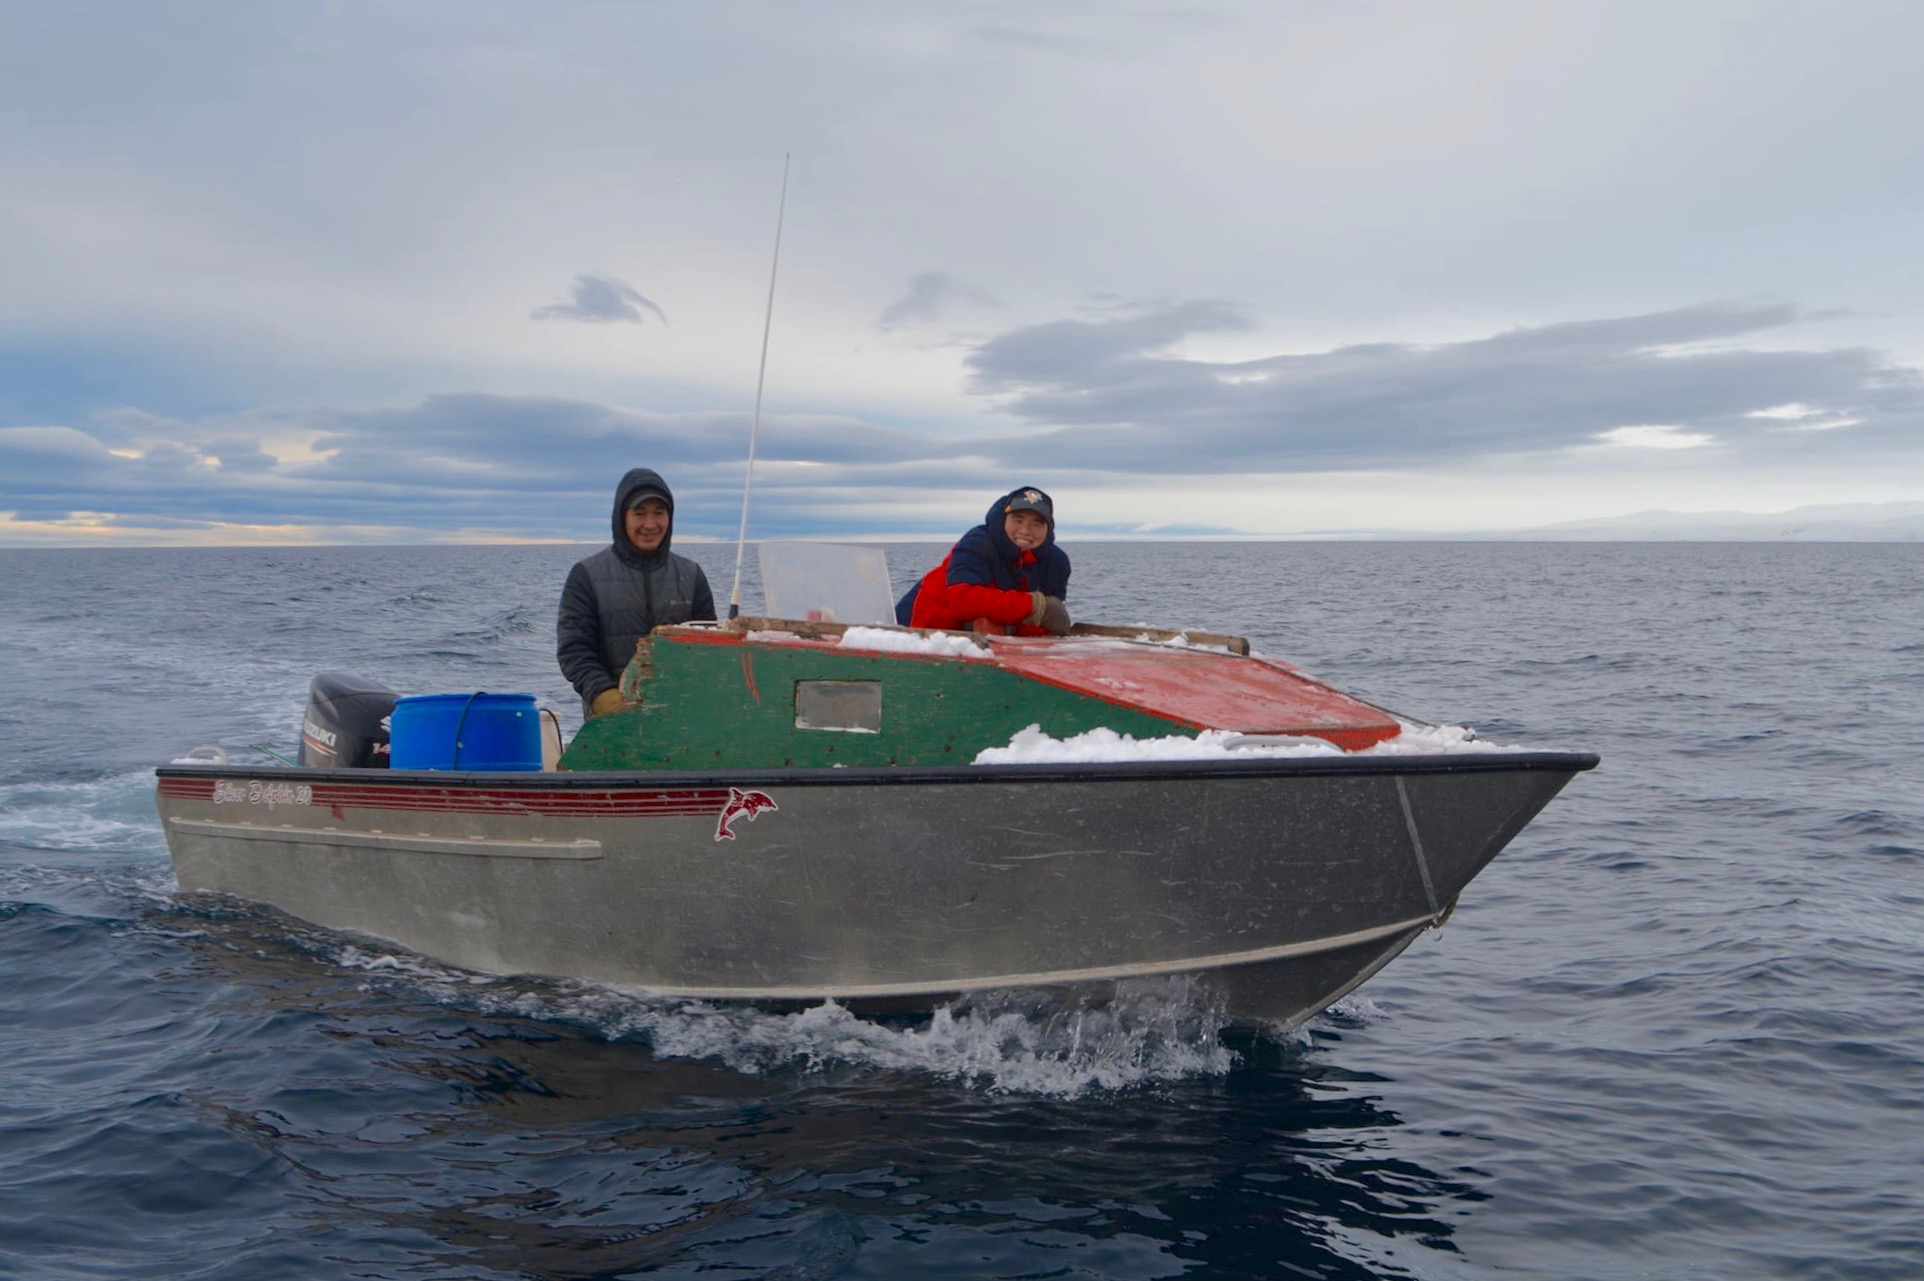 Pond Inlet brothers Lee Inuarak, left, and Michael Inuarak set out in one of two dozen boats that took part in a community narwhal hunt on Sept 22 and 23. (Photo by Norman Koonoo)